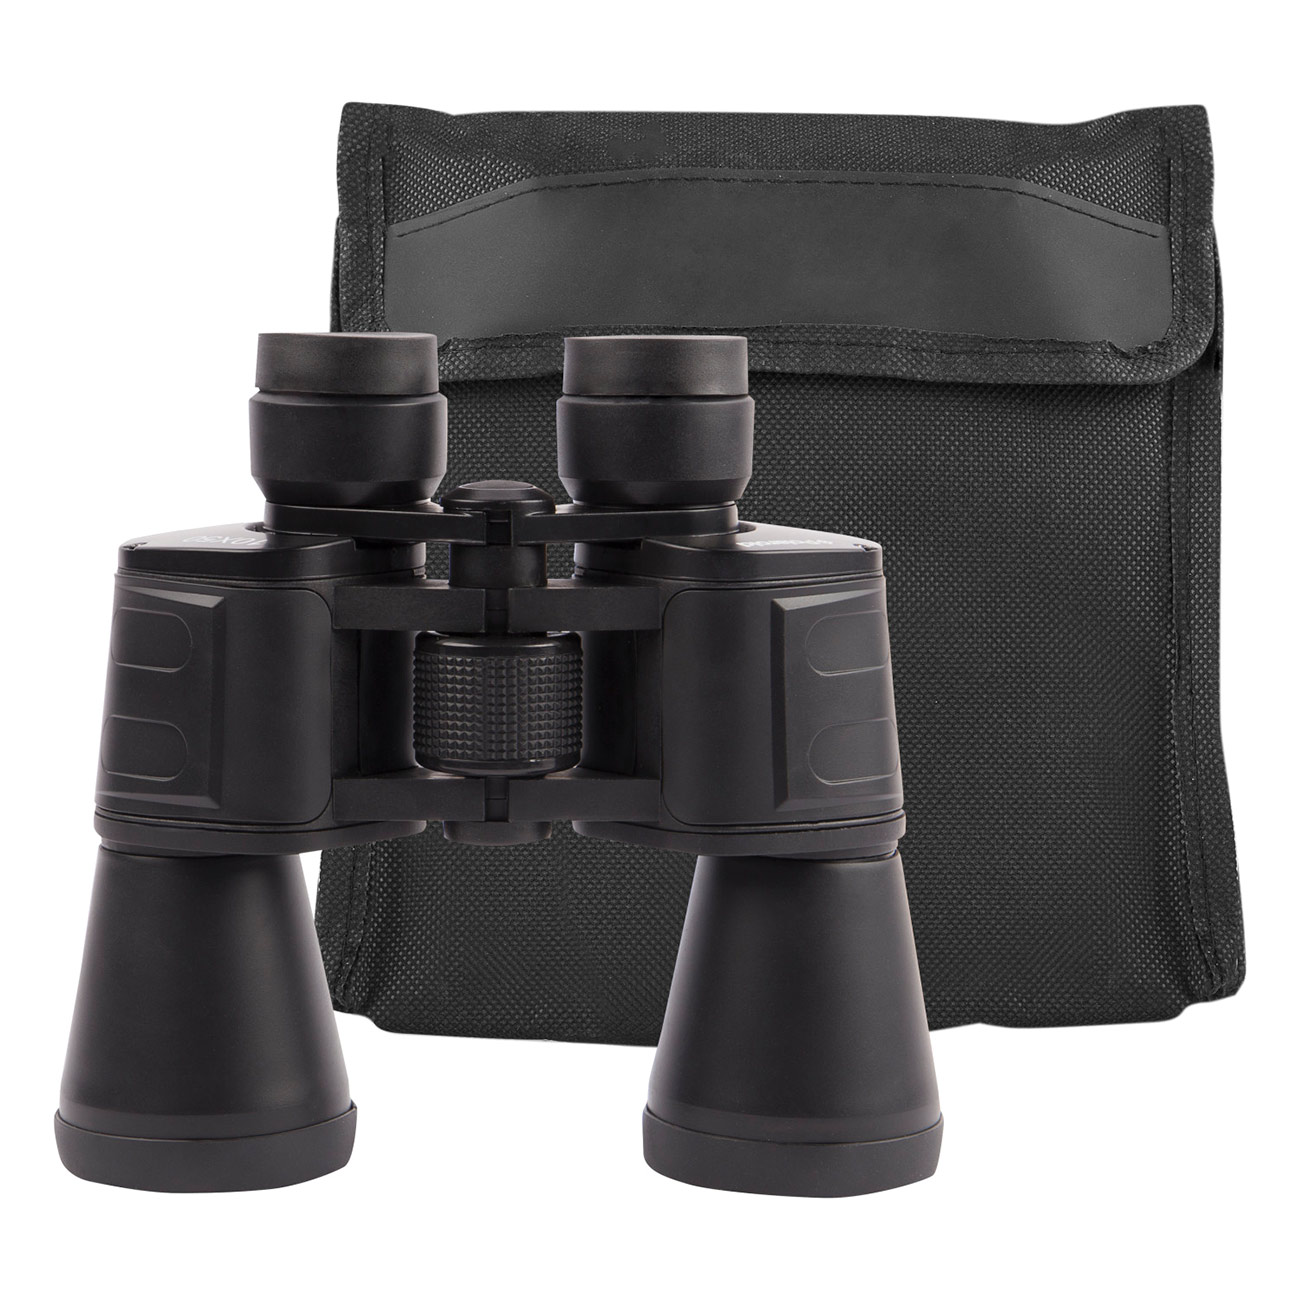 Polaroid Sports Binoculars with Case and Shoulder Strap